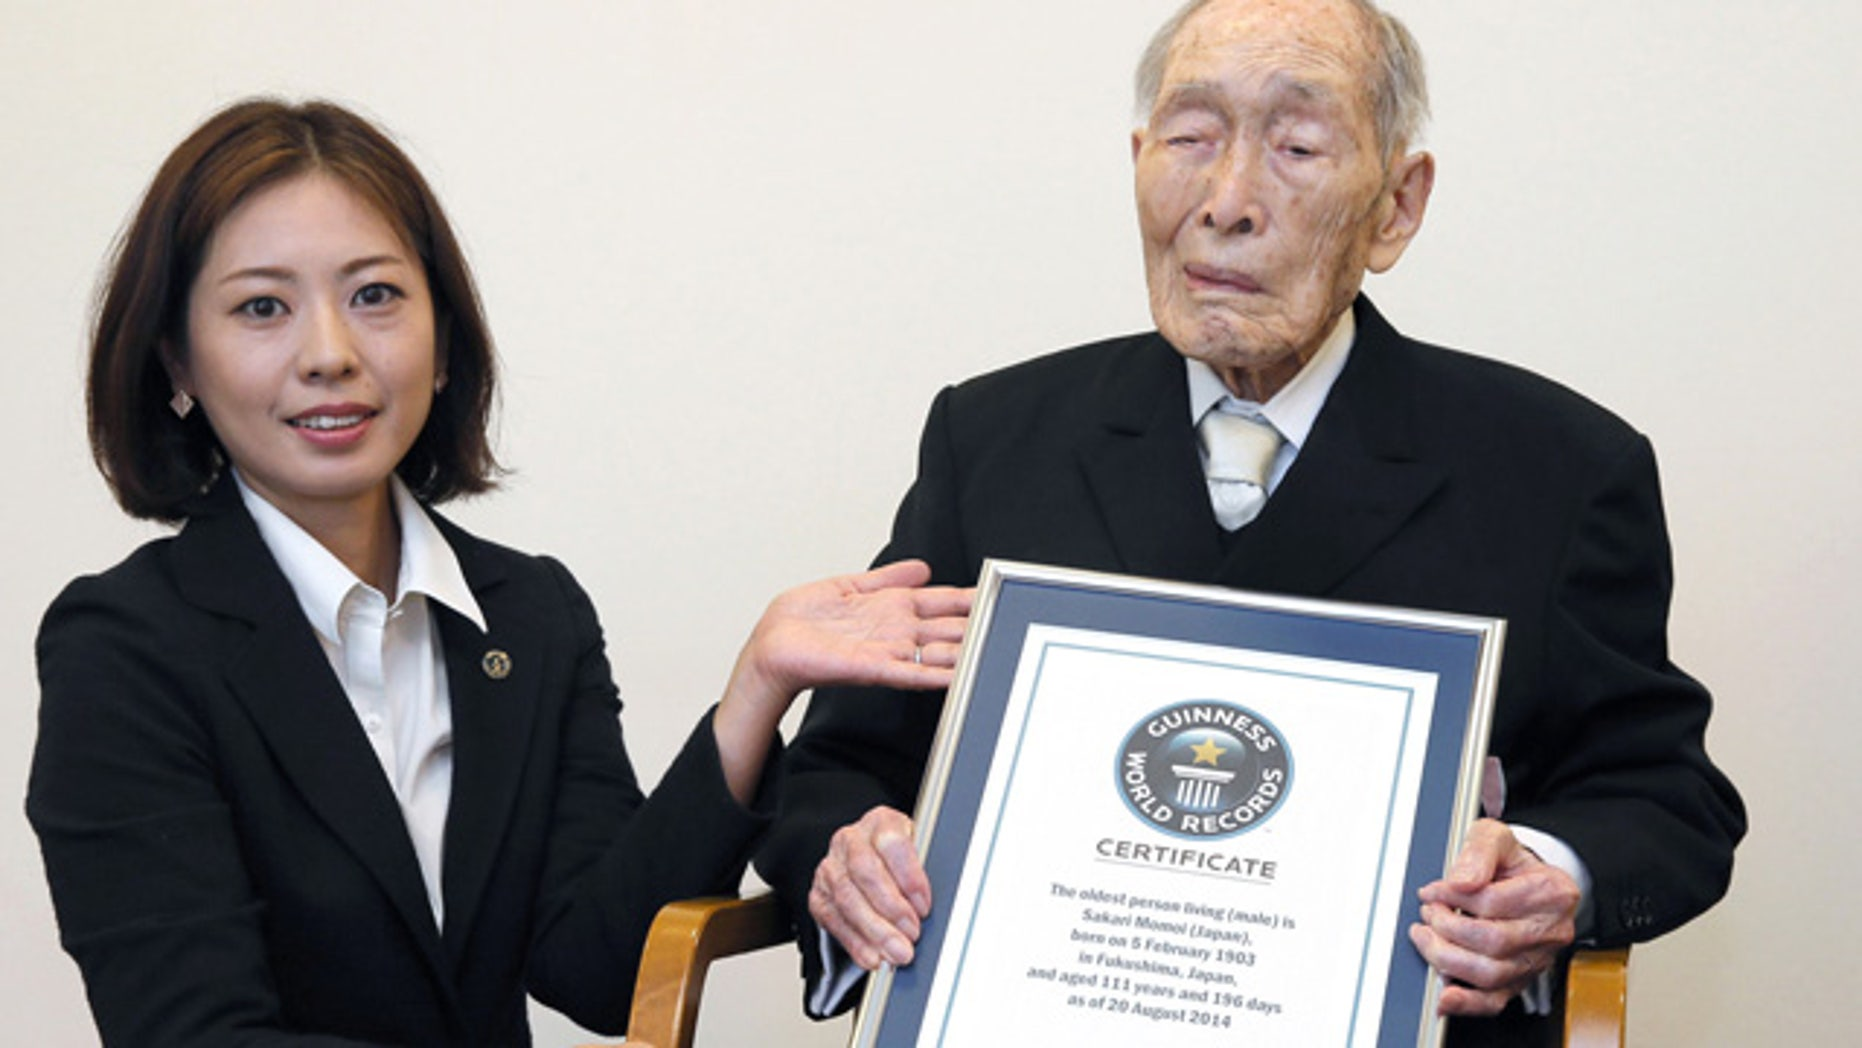 August 20, 2014: Sakari Momoi, a 111-year-old Japanese retired educator, poses for a photo after receiving a certificate from a Guinness World Records official, left, in Tokyo. Momoi was recognized as the worlds oldest living man on Wednesday, succeeding Alexander Imich of New York, who died in April at the age of 111 years, 164 days. (AP Photo/Kyodo News)